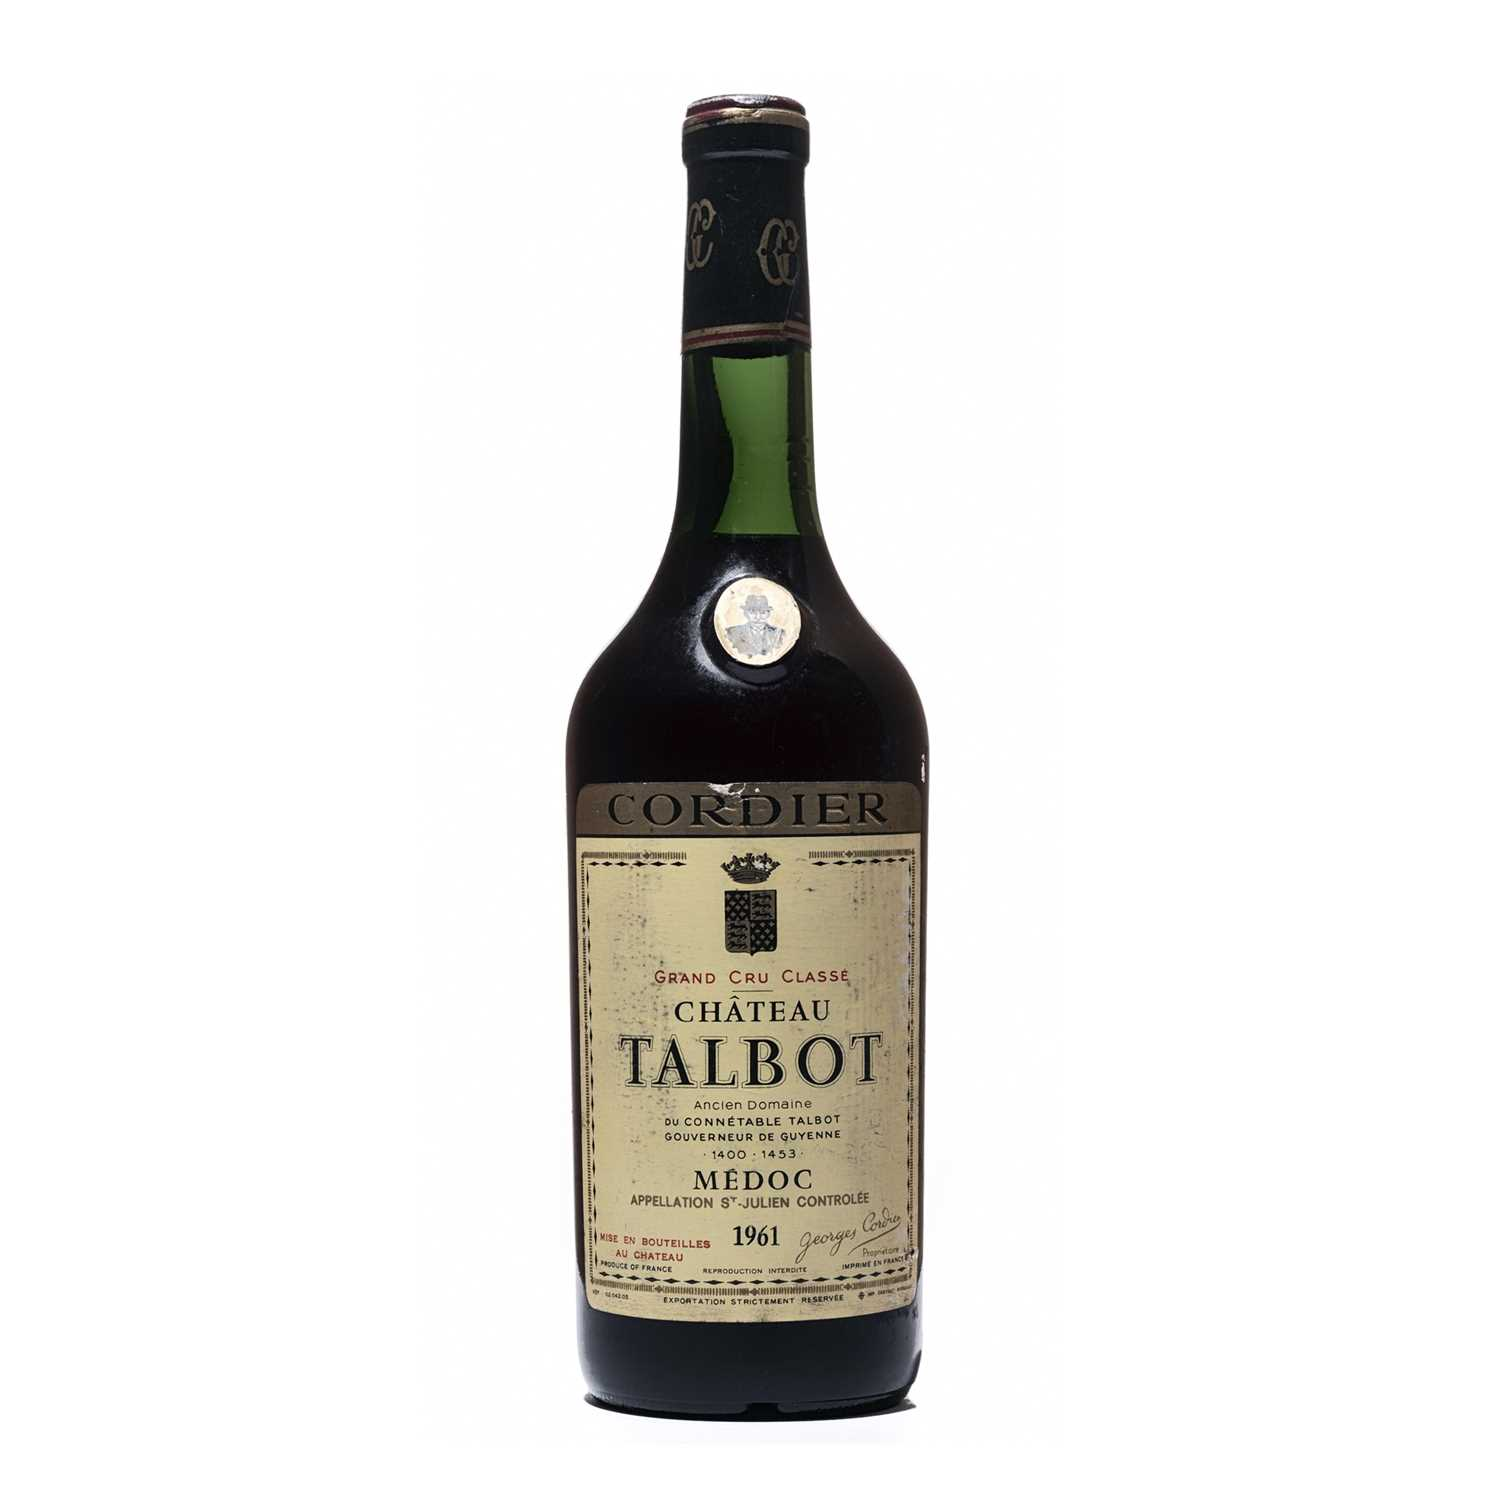 Lot 13 - 1 bottle 1961 Ch Talbot